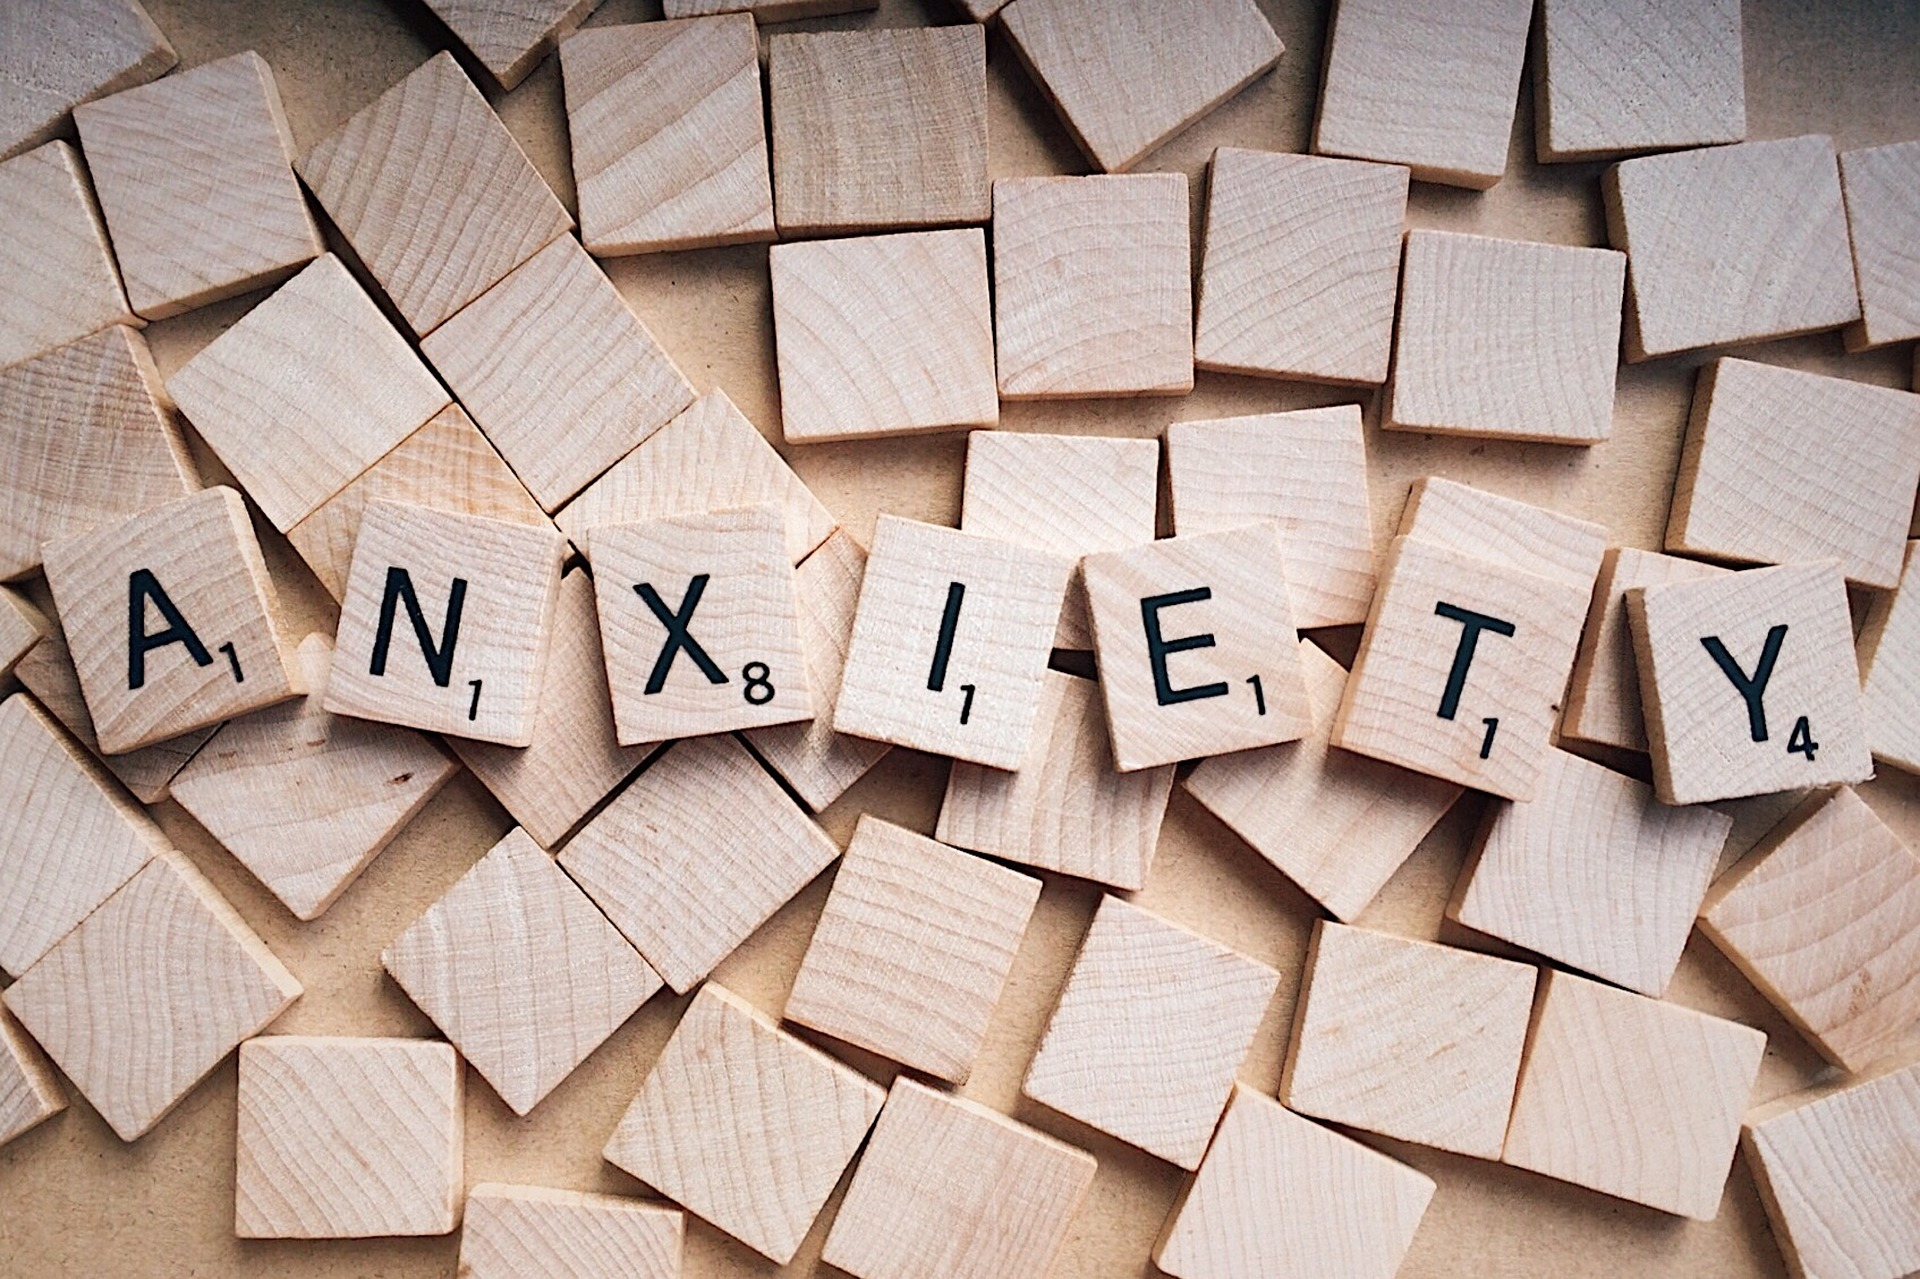 Overcoming Anxiety with Present Moment Awareness, by Iman